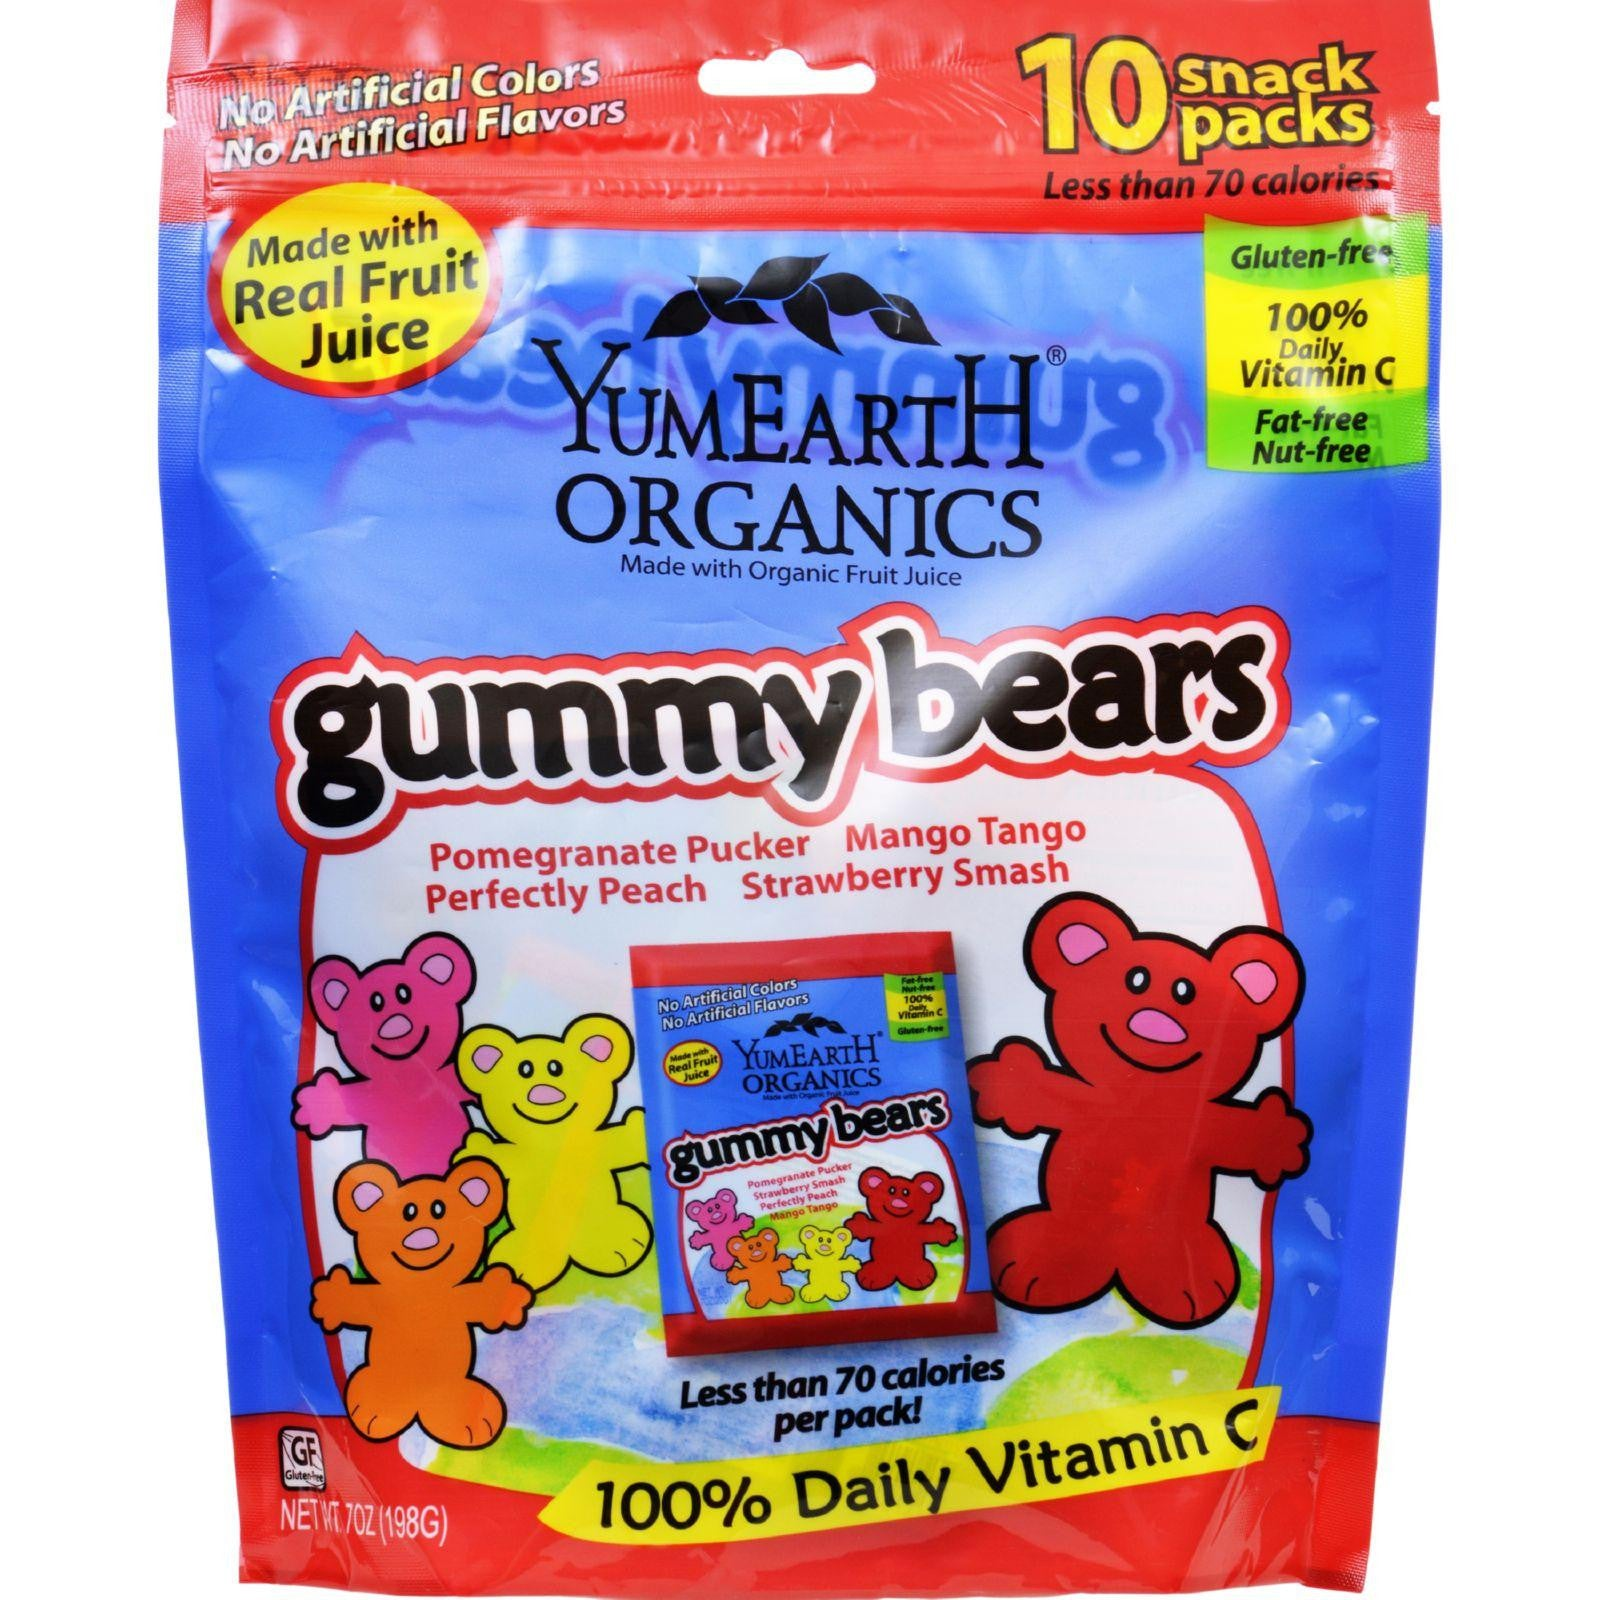 YummyEarth - Gummy Bears: 120 bags